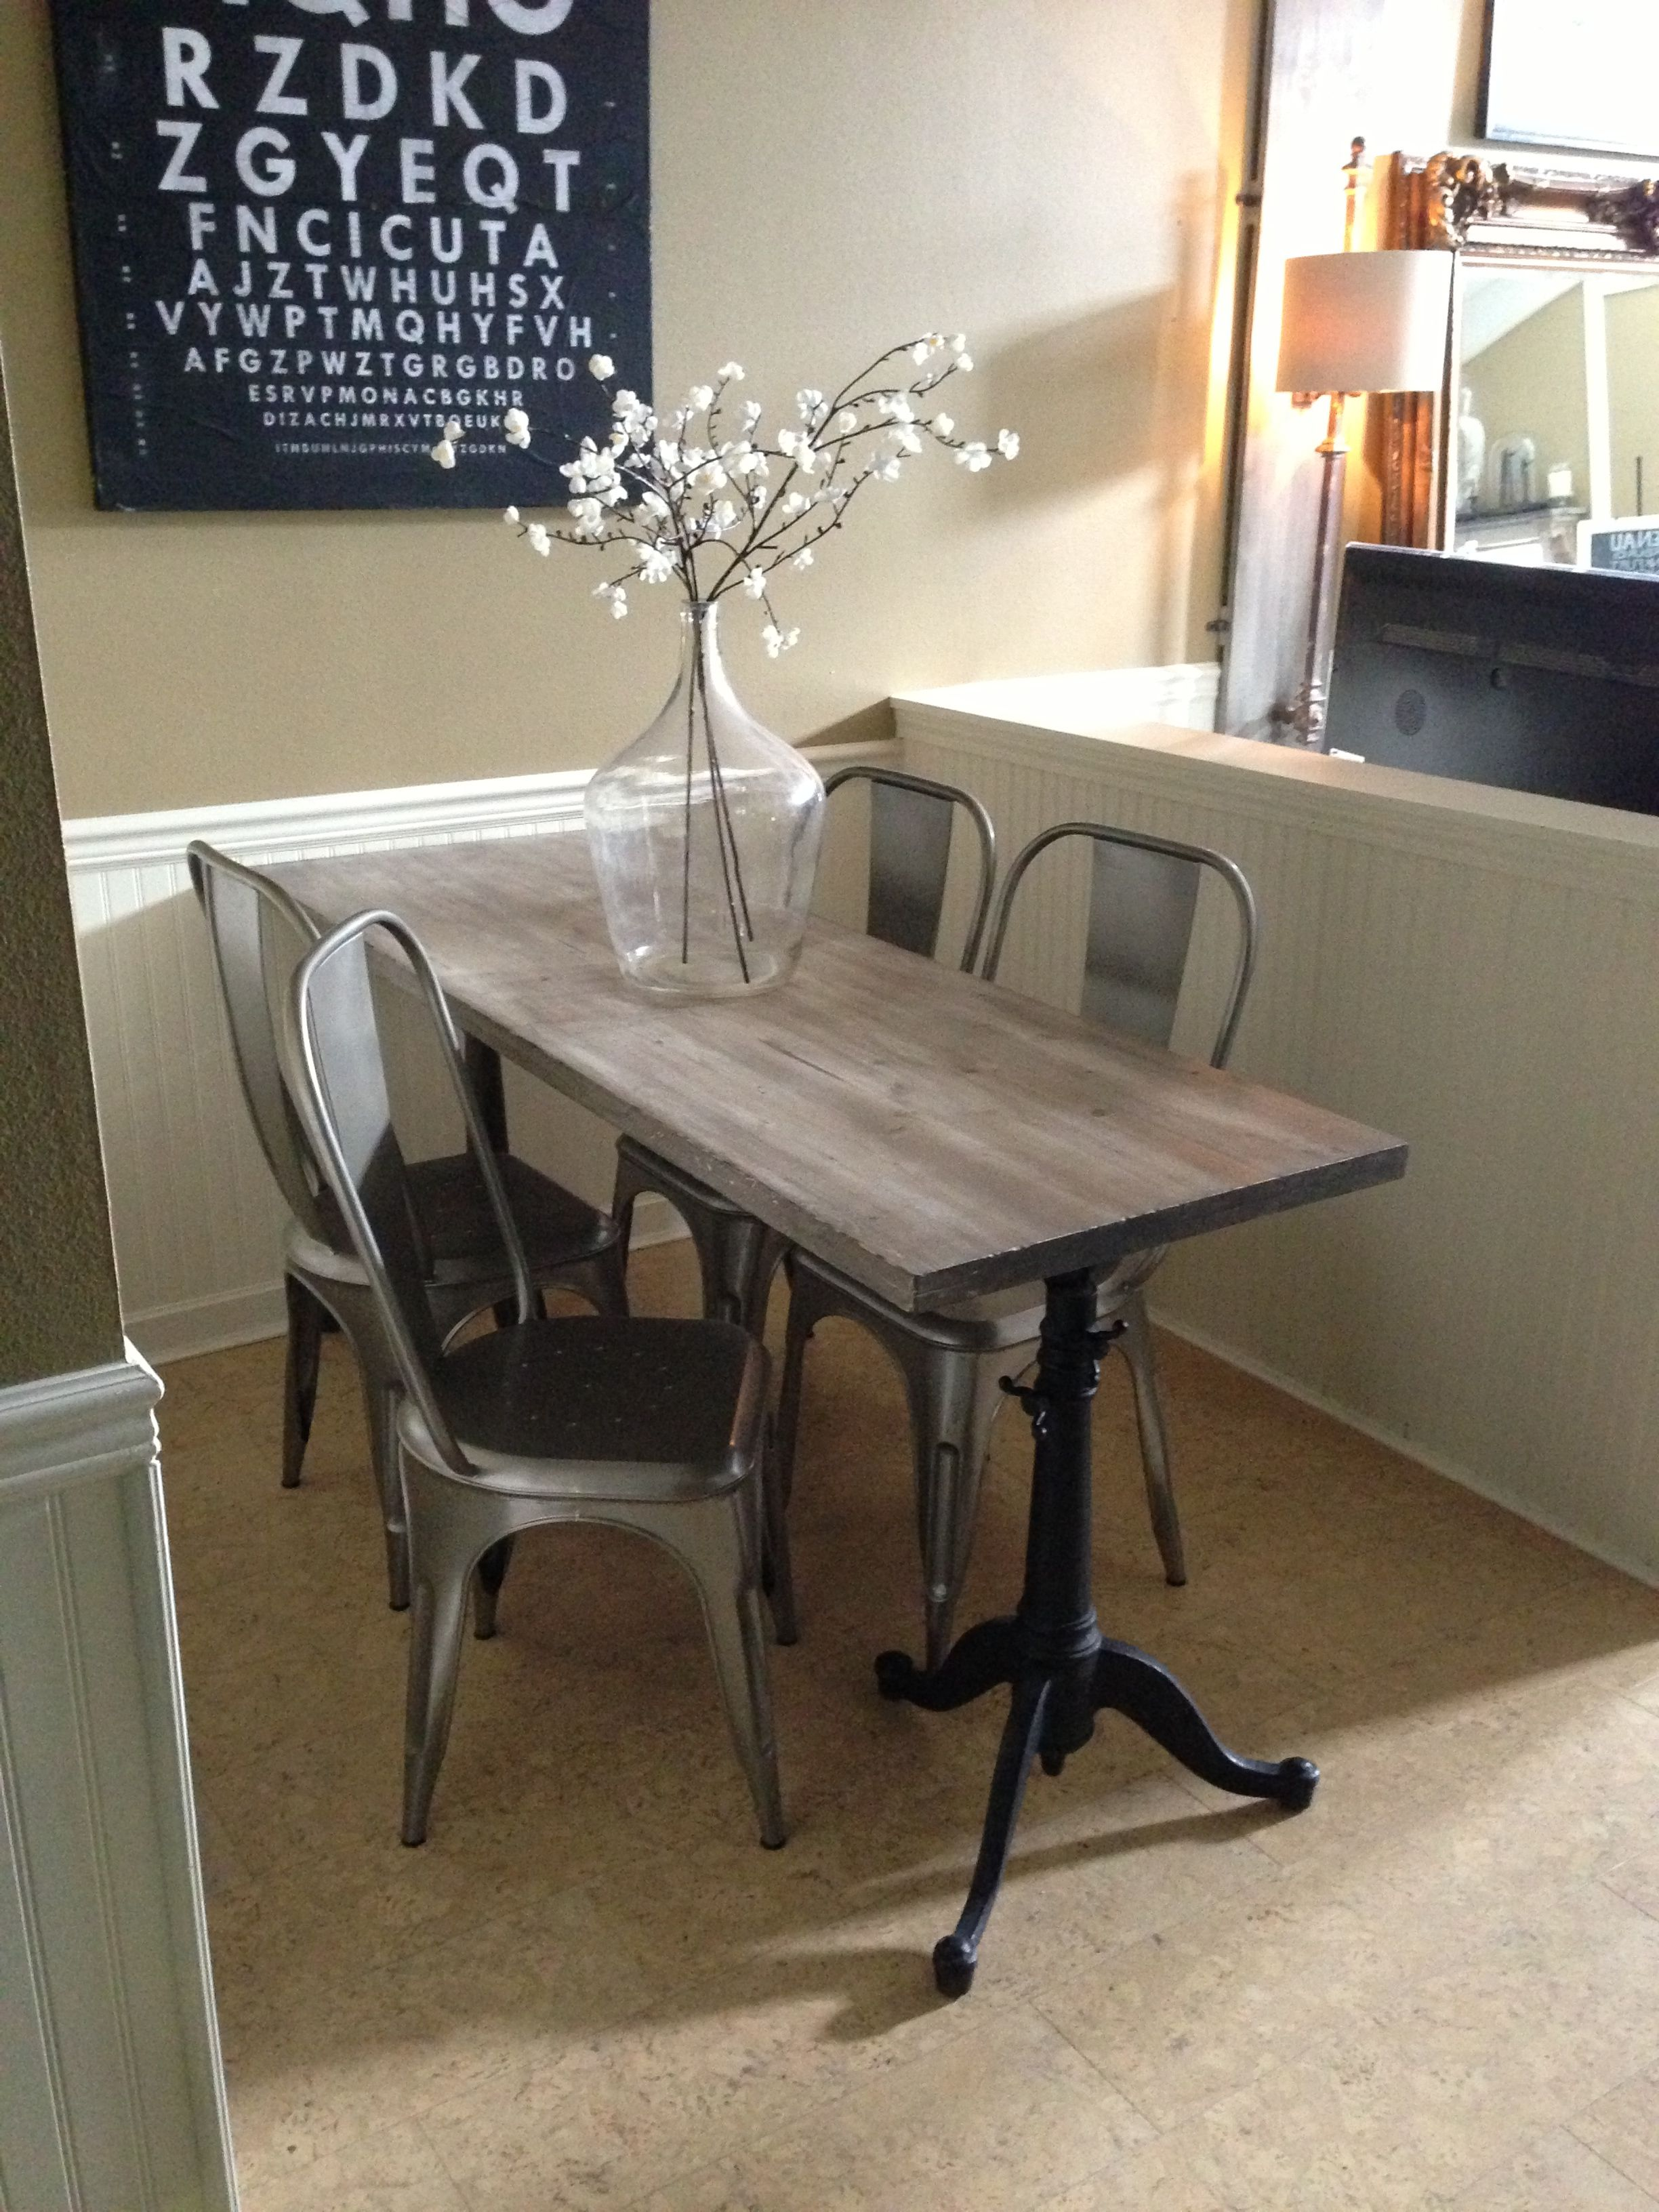 Dining Table Ideas For Small Spaces Narrow Dining Table For Narrow Space Industrial Chic